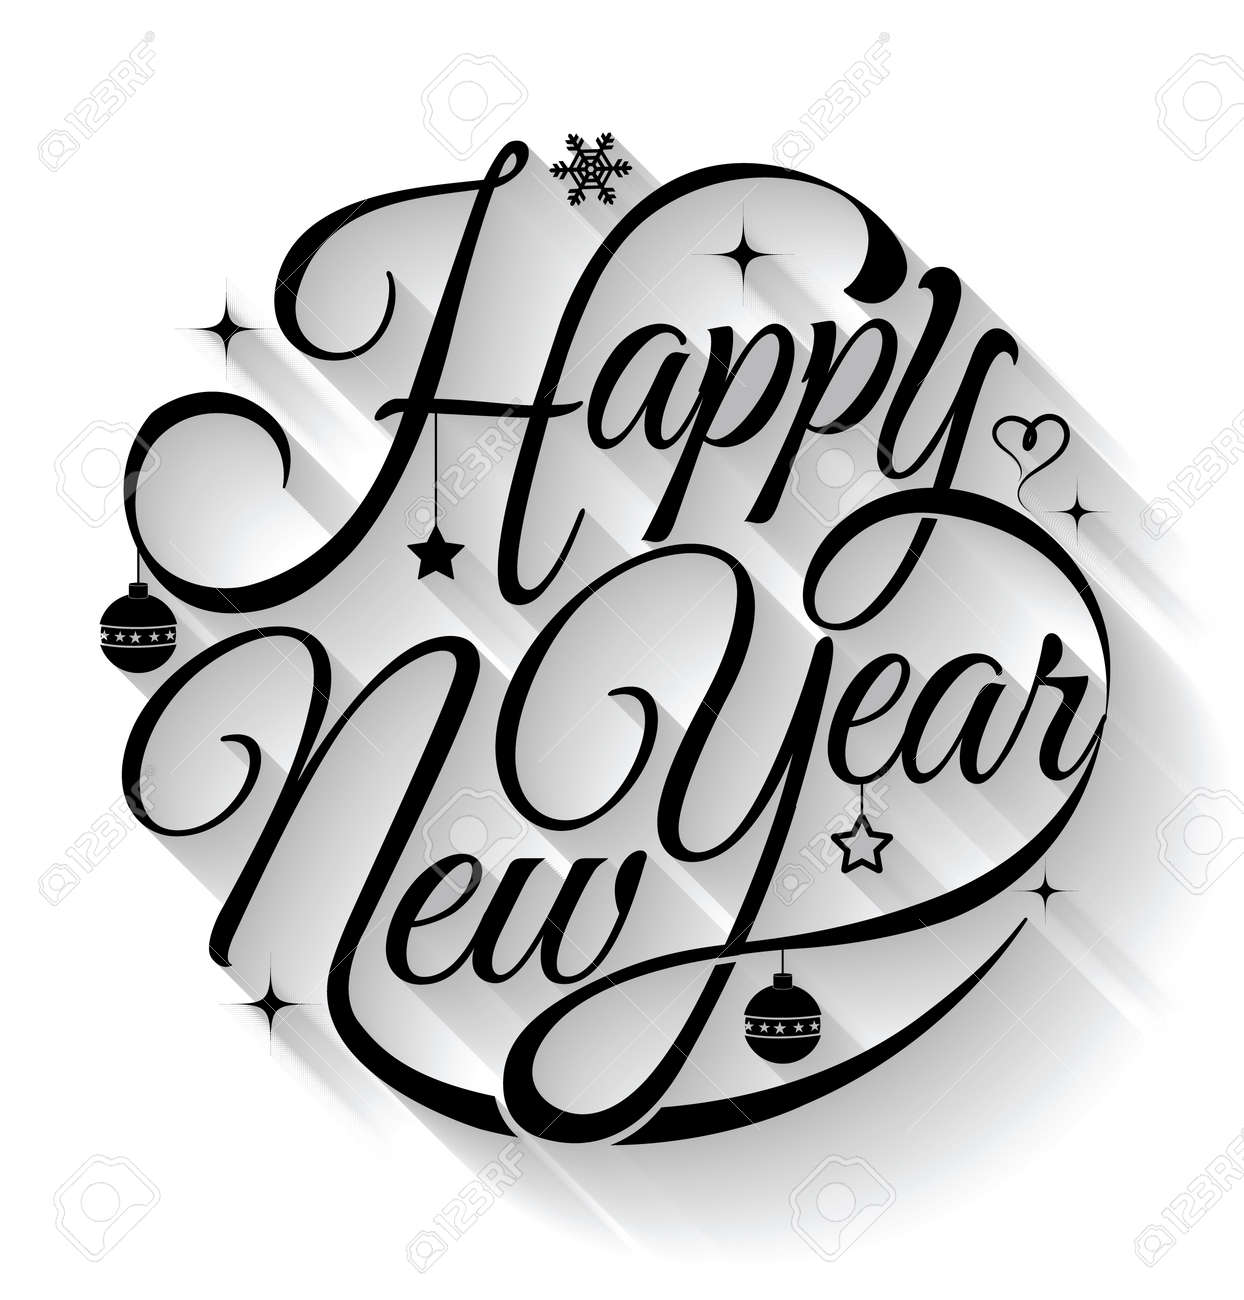 Happy new year card. Vector illustration. Can use for printing and web. - 33114940